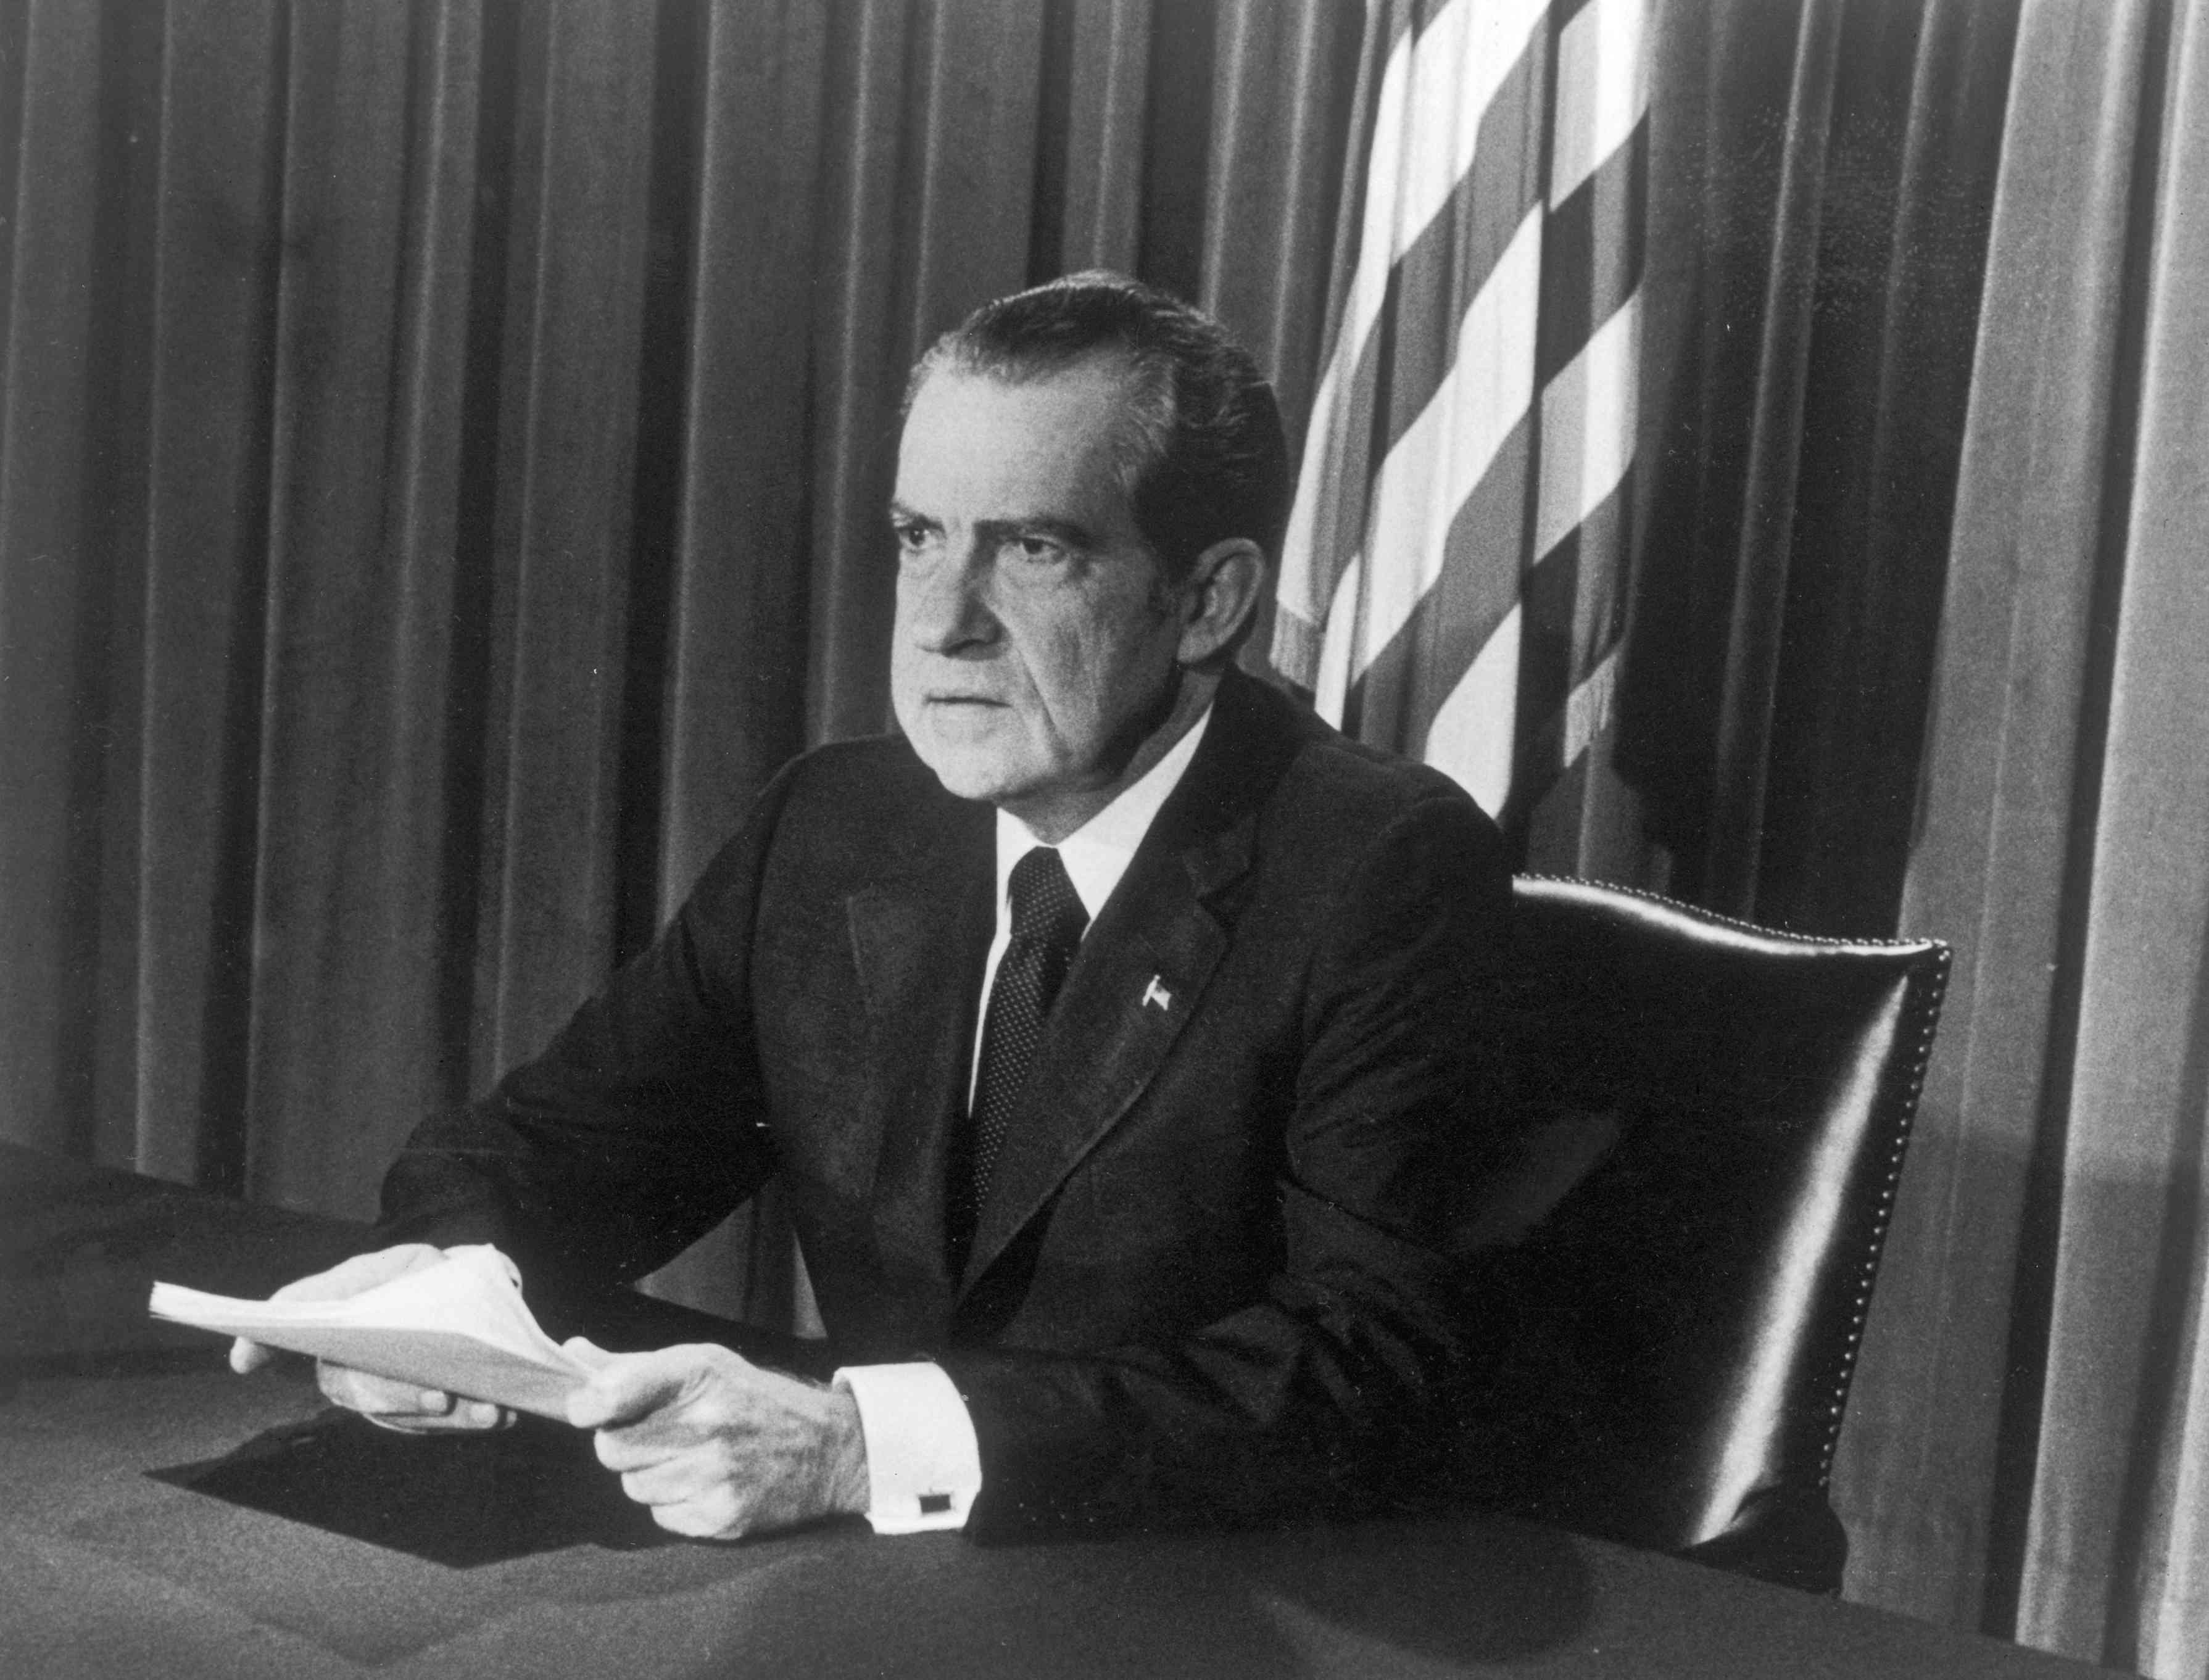 Richard Nixon sits at a desk with papers in hand